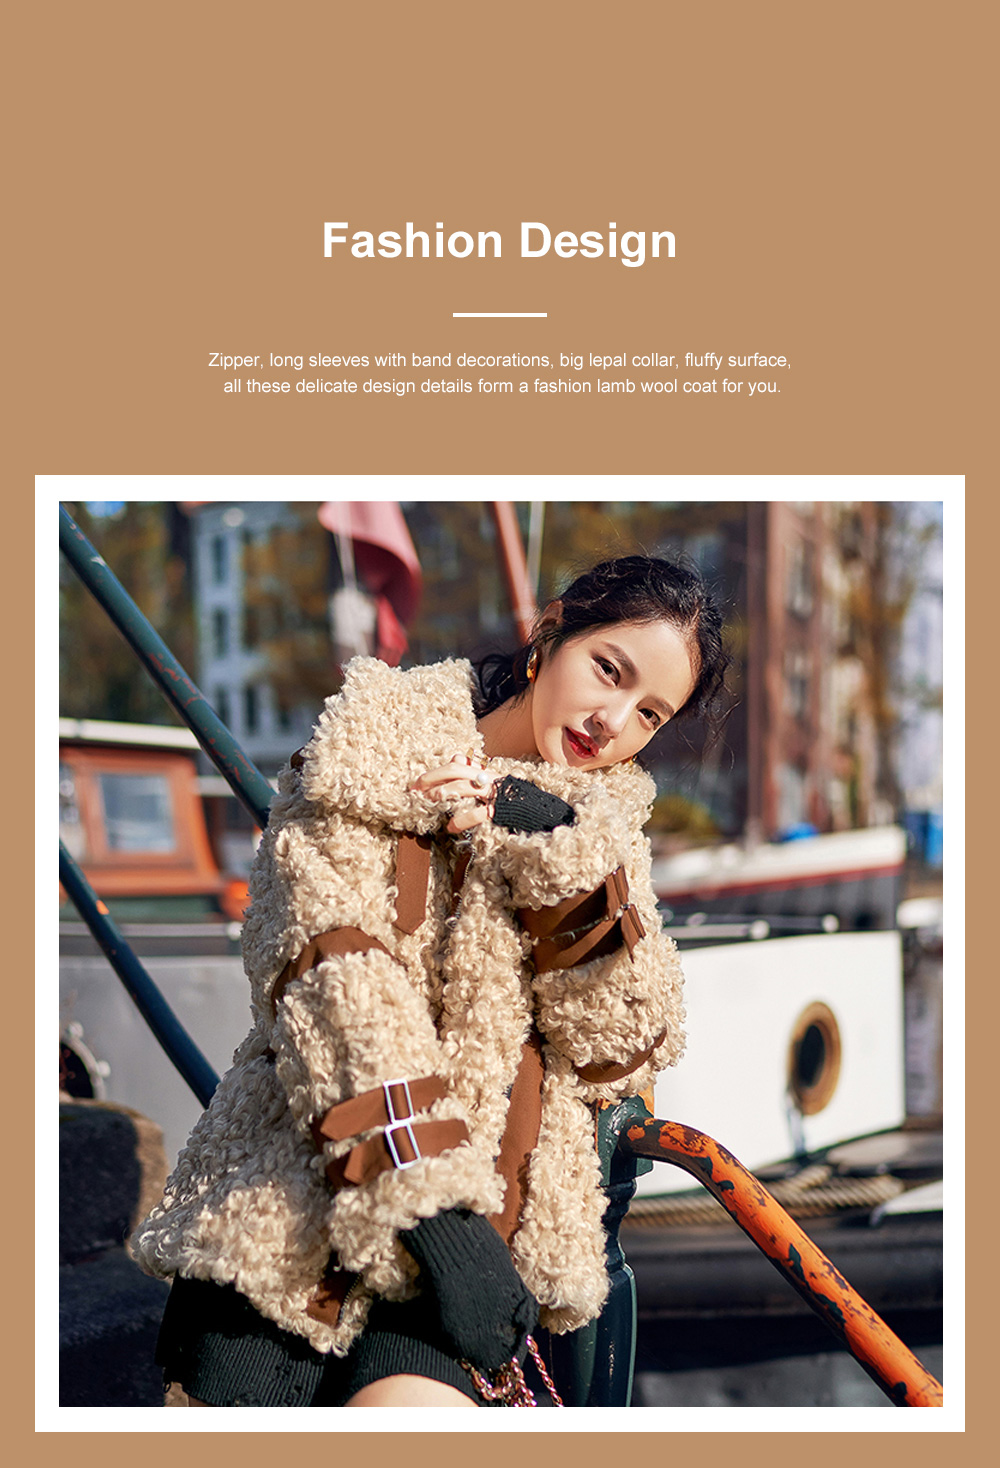 Women Lamb Wool Coat Short Cardigan Thick Spliced Lamb Coat with Long Sleeves for Autumn and Winter 2